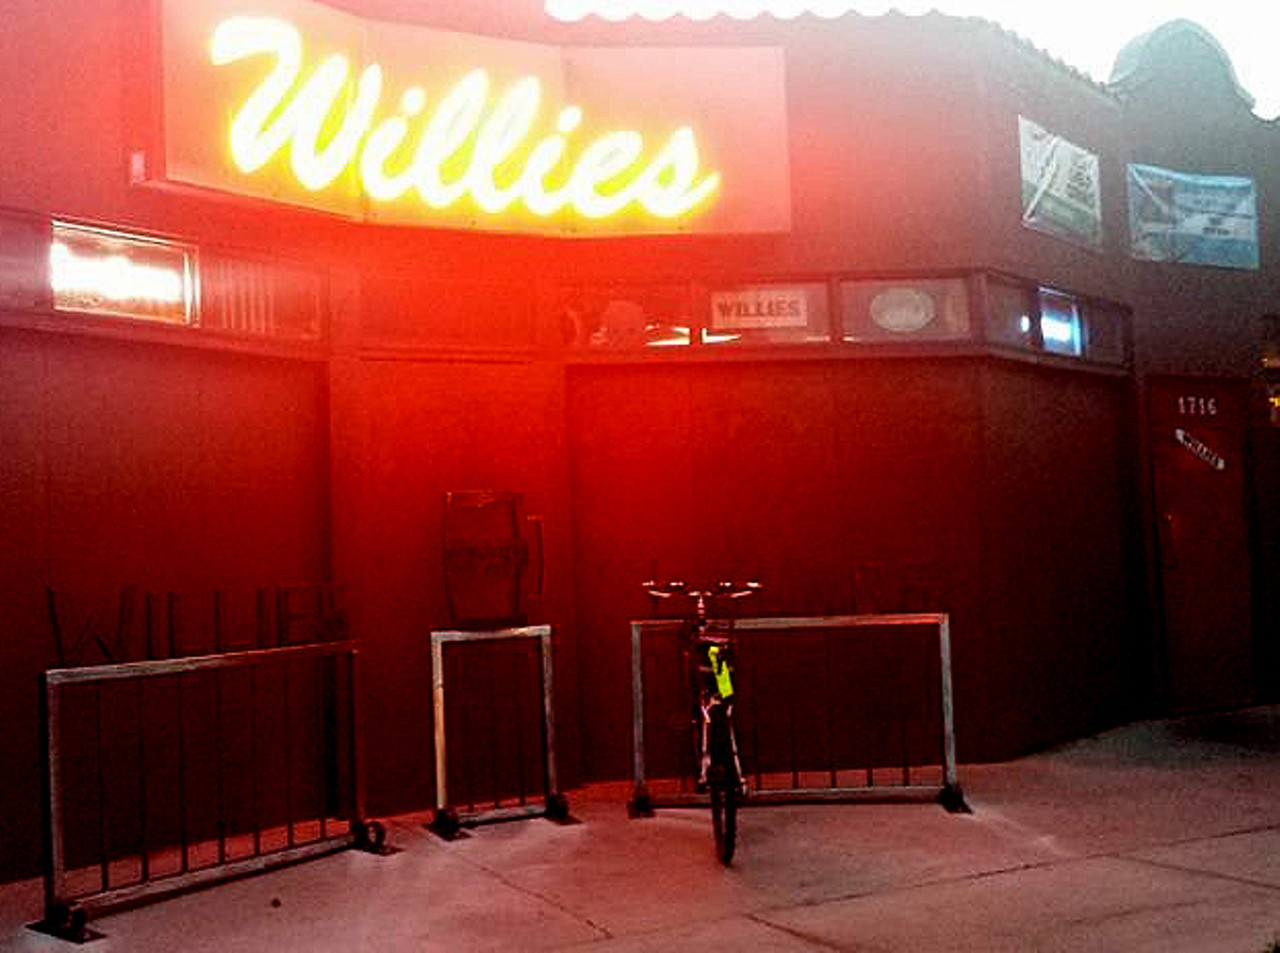 Willie S Lounge Slc Midtown Lounge Casual